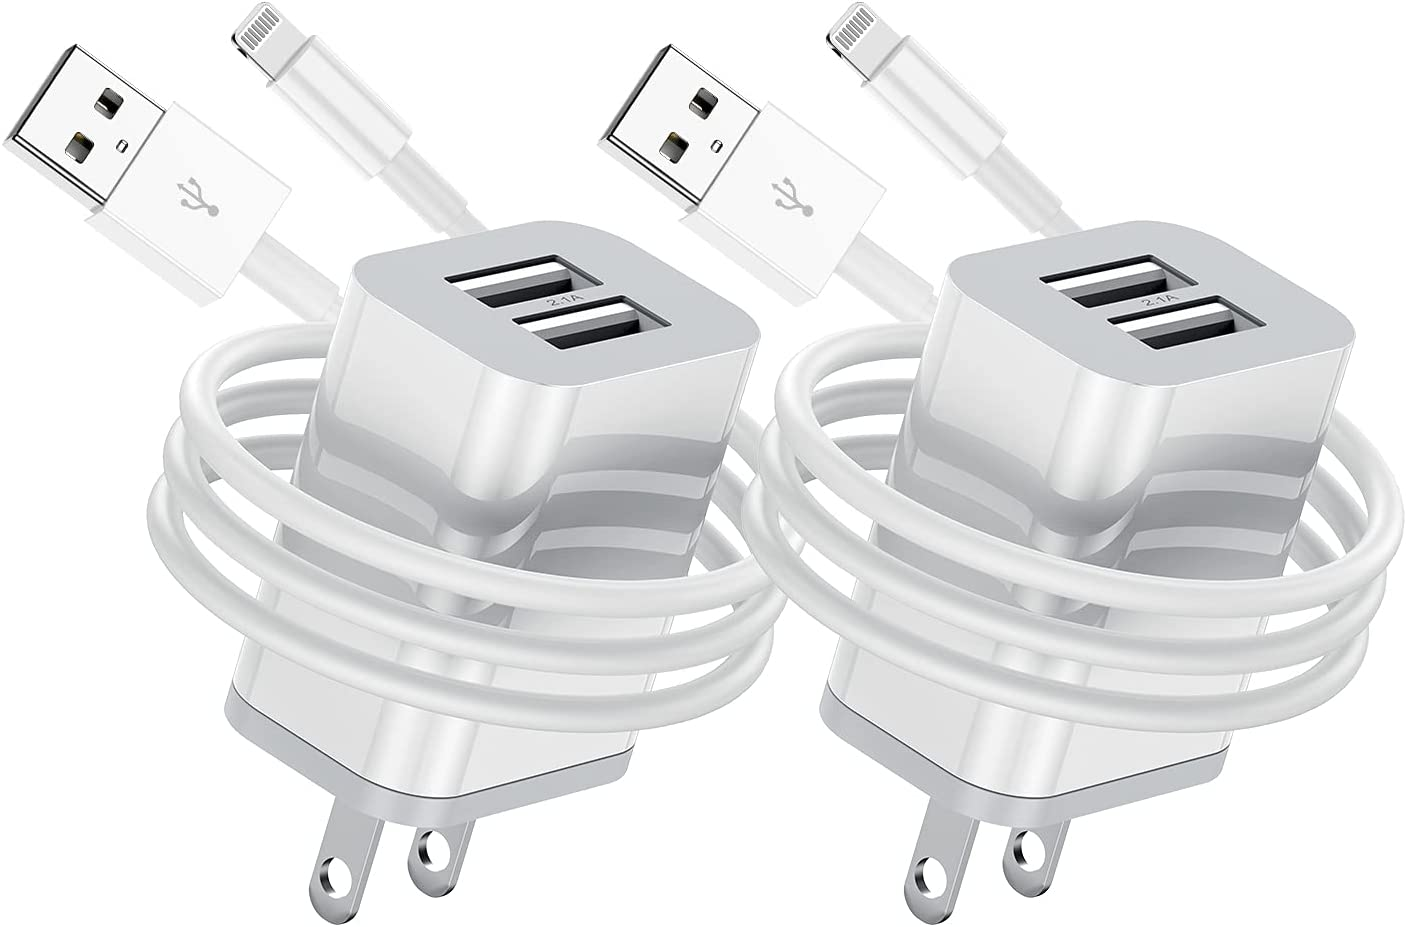 Long iPhone Charger Cable 10ft with Wall Plug, 2Pack Apple MFI Certified Lightning Cable with Dual Port USB Wall Charger Block Cube Adapter for iPhone 11 Pro/XS Max/XR/X 8/7/6/6S Plus/SE/5C/iPad